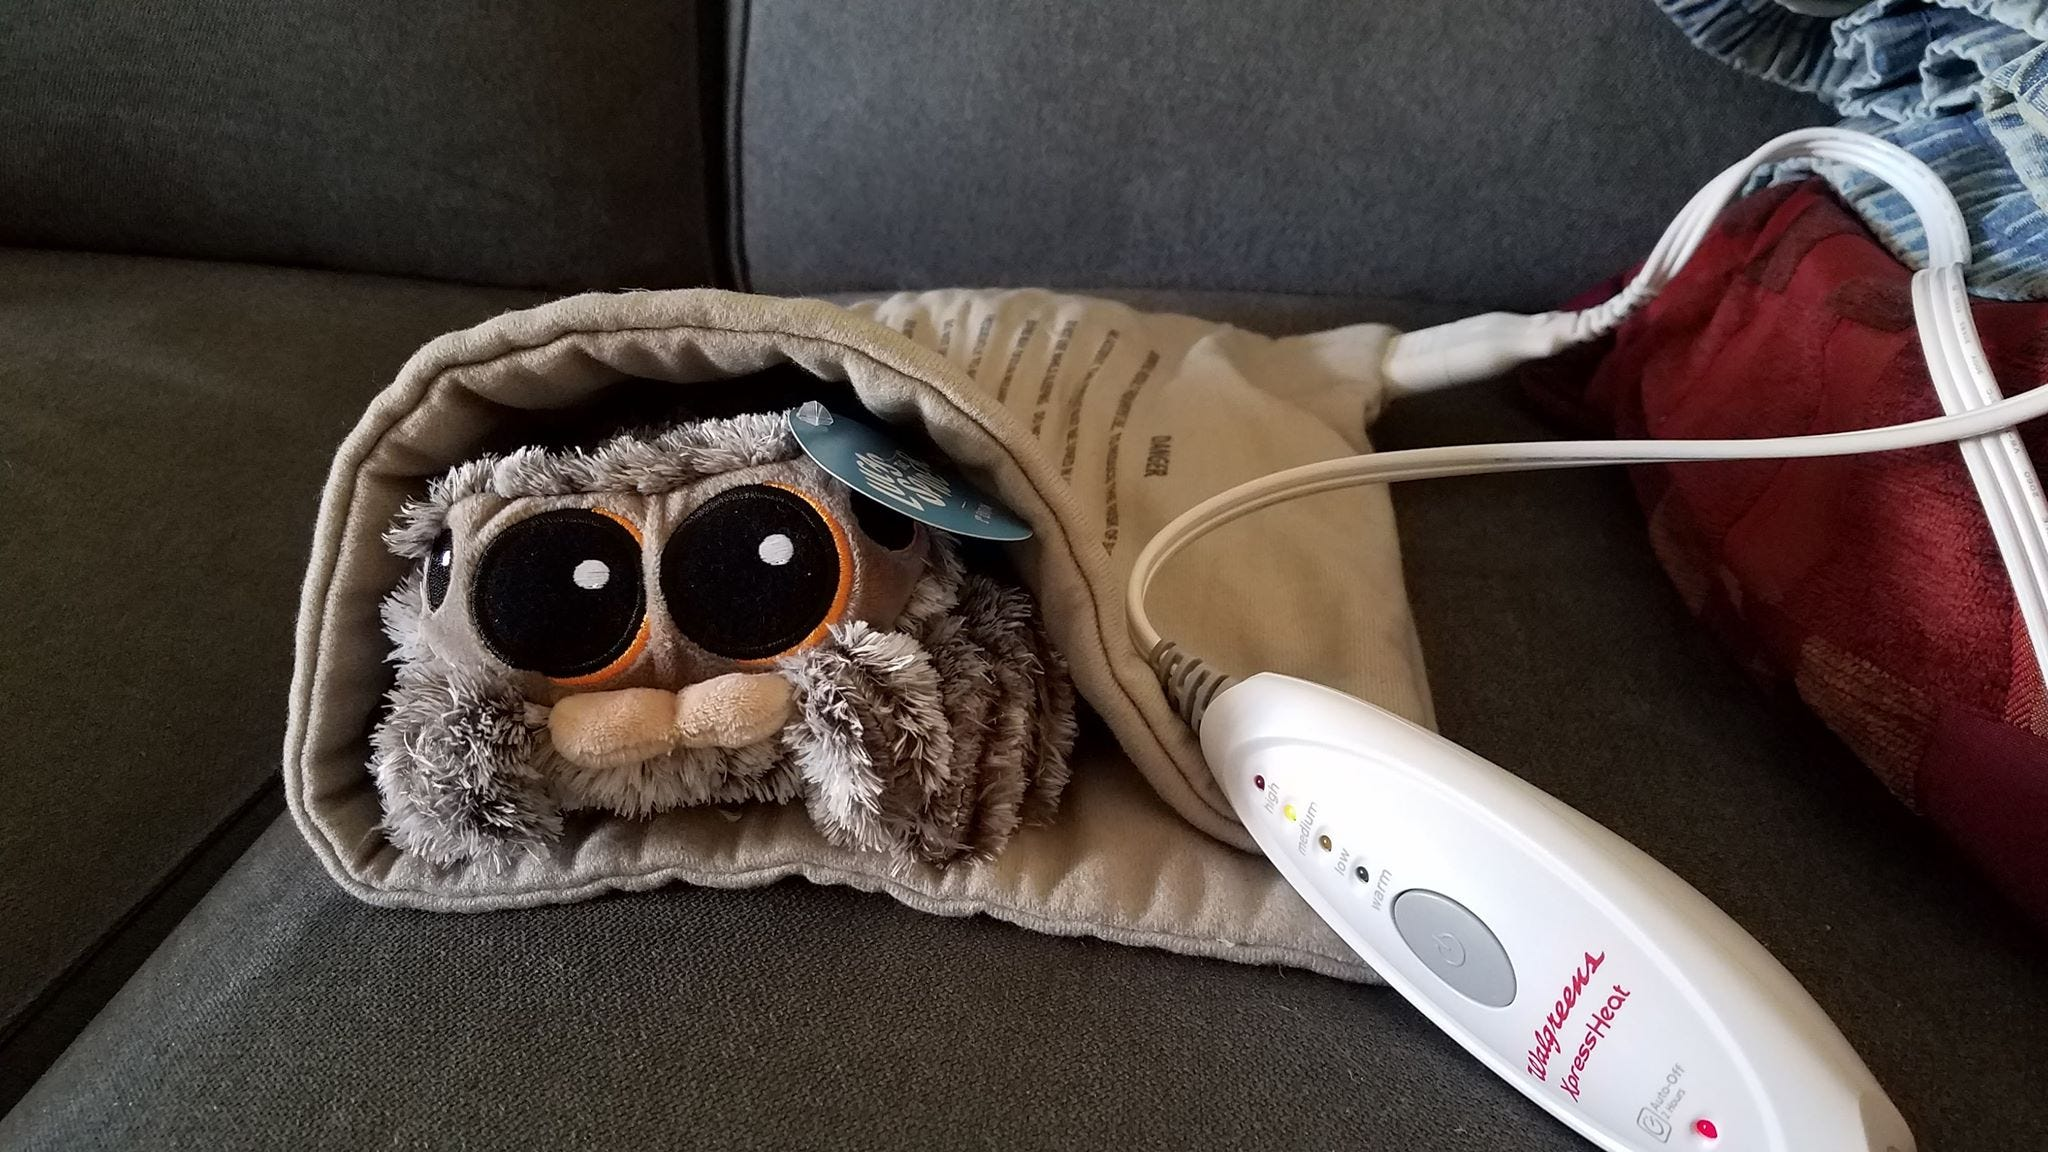 People Are Angry The Lovable Long Awaited Lucas The Spider Plushie